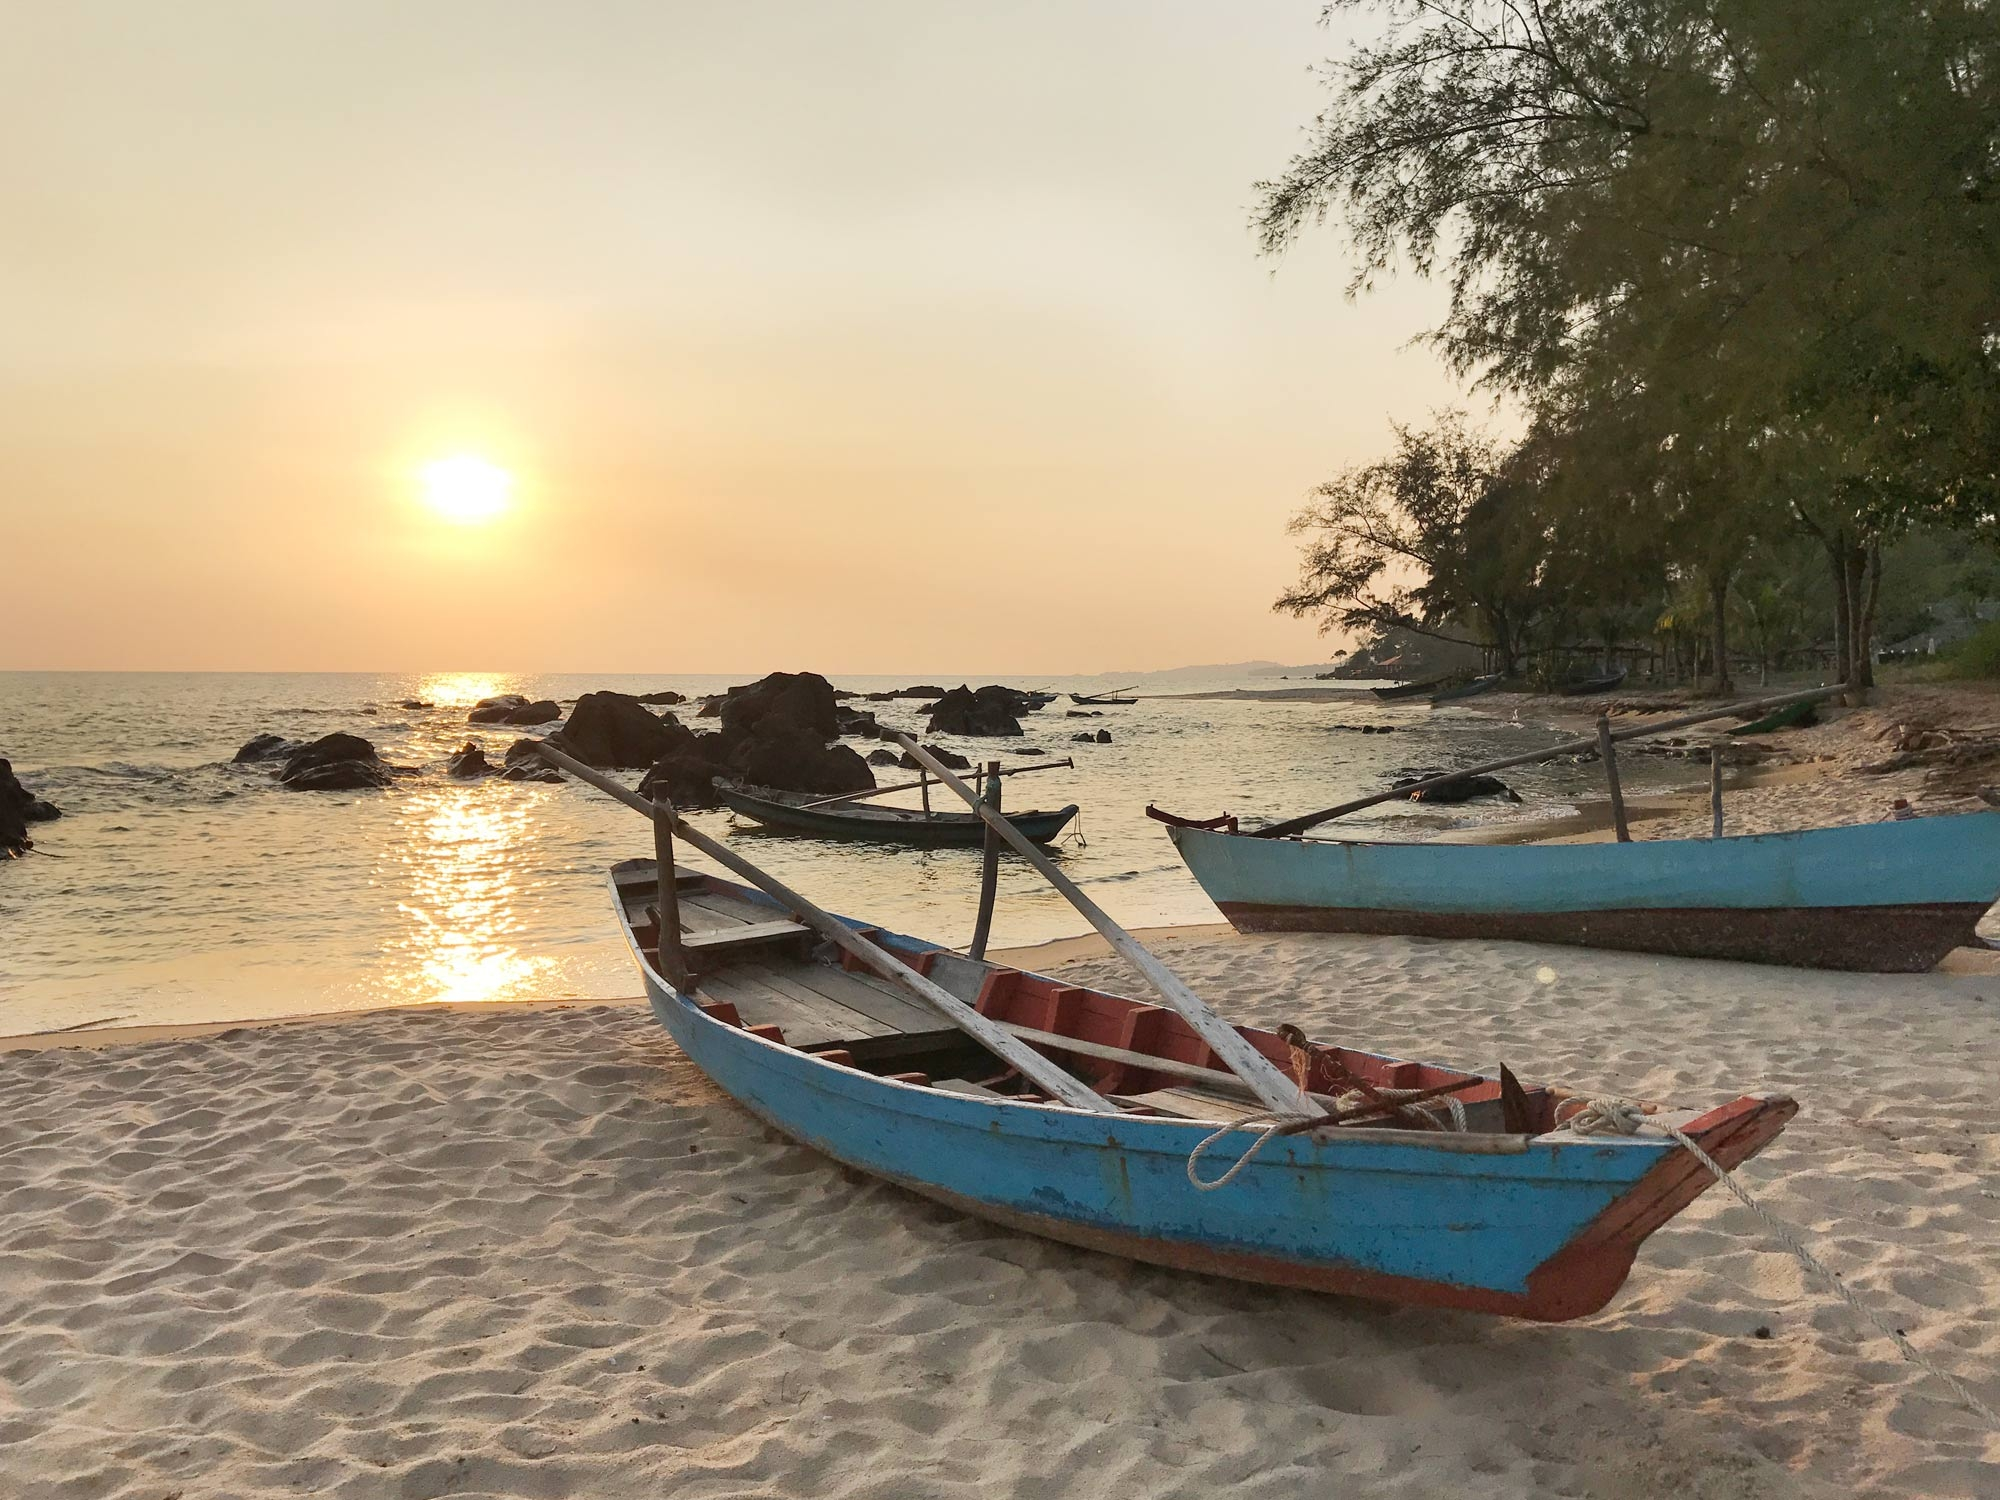 Vietnamese row boats sit on the shoreline as the sun sets over the horizon